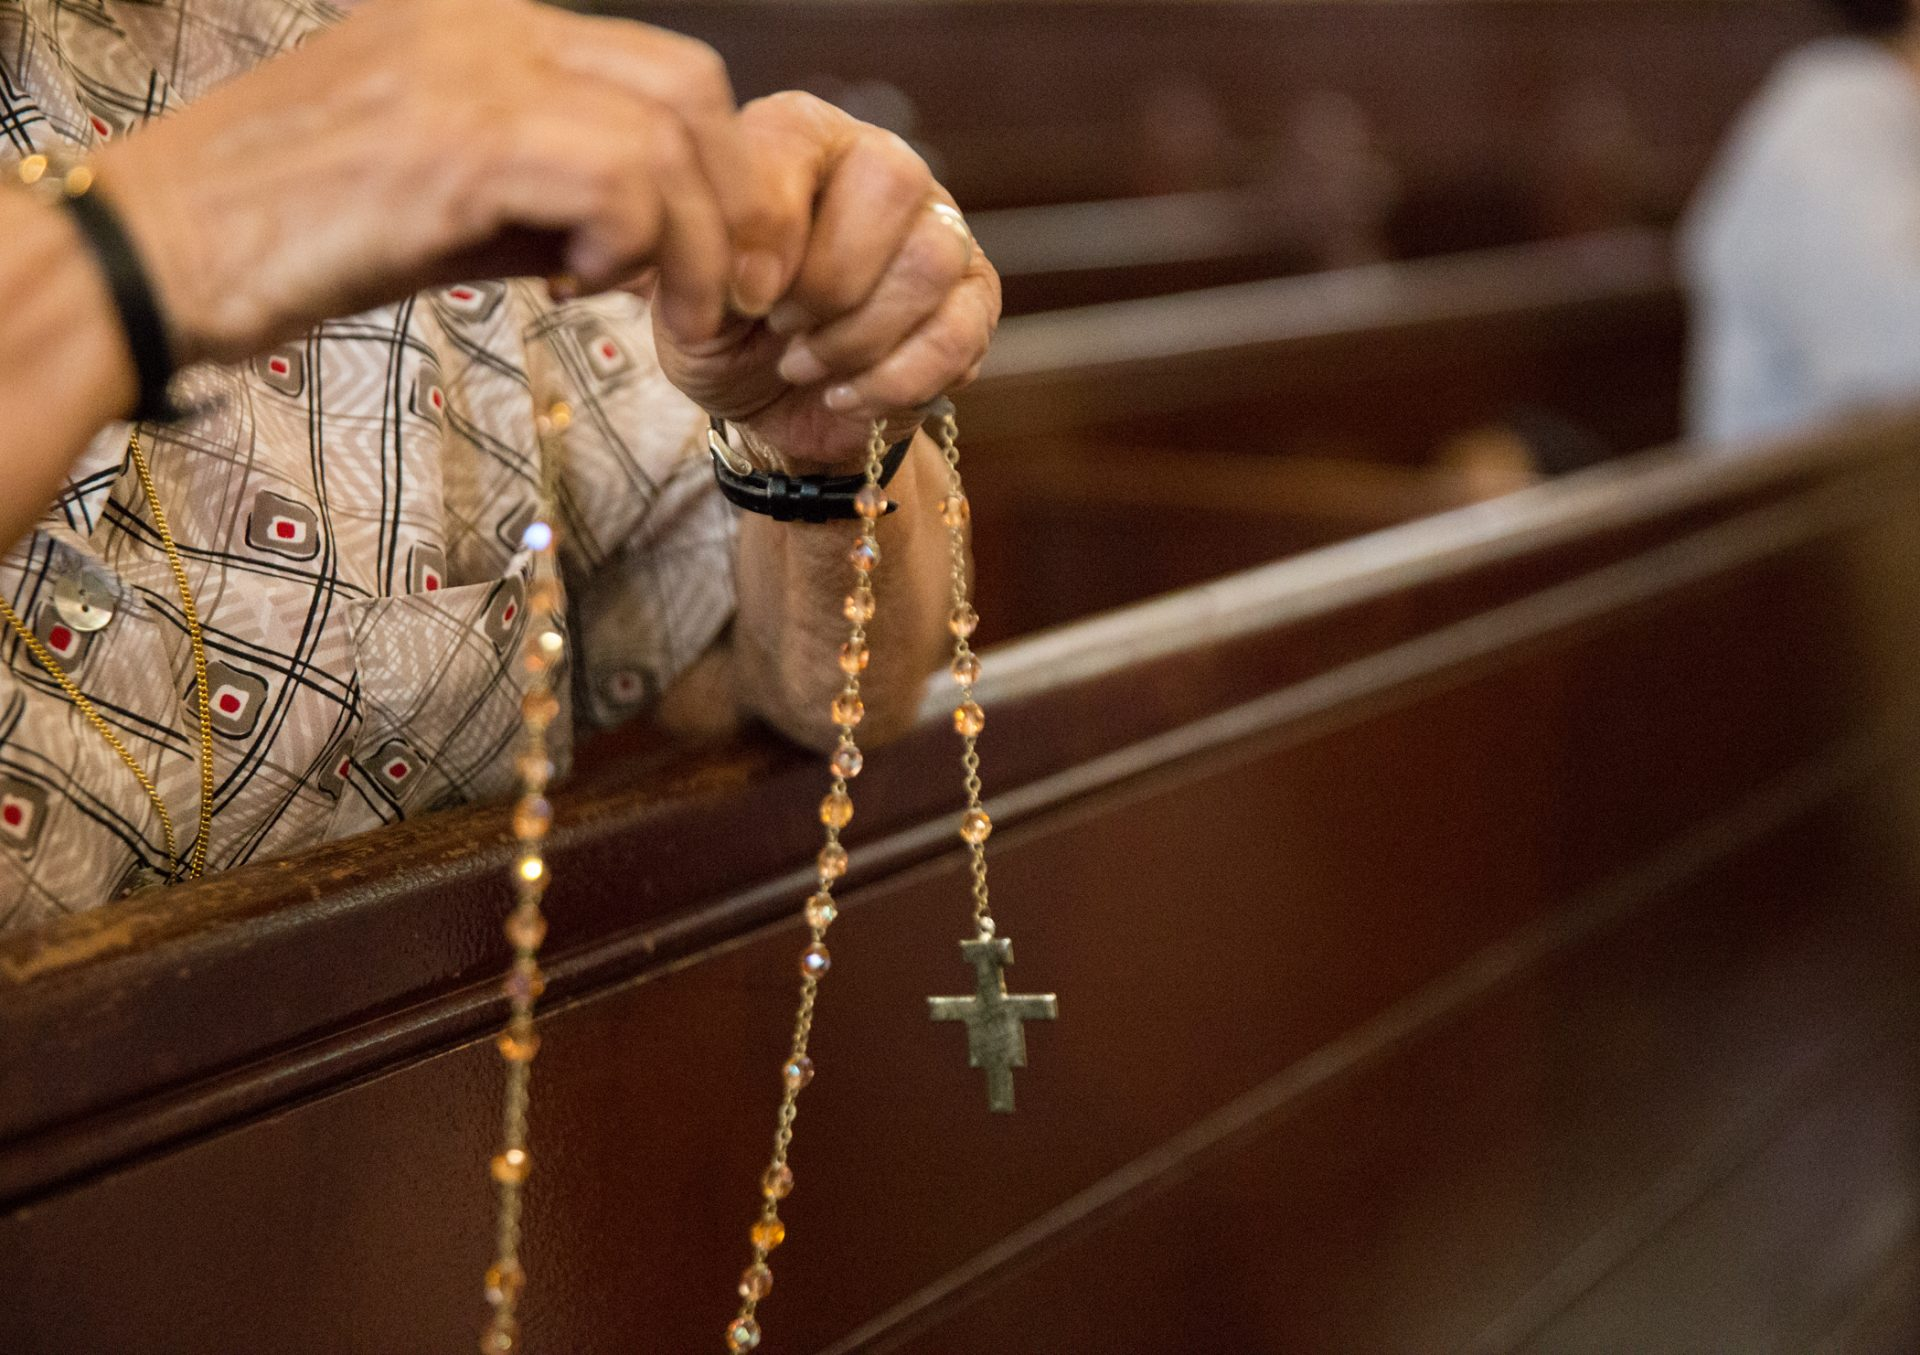 Parishioners pray the Rosary at Holy Infancy Roman Catholic Church in Bethlehem, Pennsylvania after mass on Tuesday, August 14, 2018. The same day, Pennsylvania Attorney General released his two-year grand jury investigation into widespread sexual abuse and cover-up within six Catholic dioceses across the state.